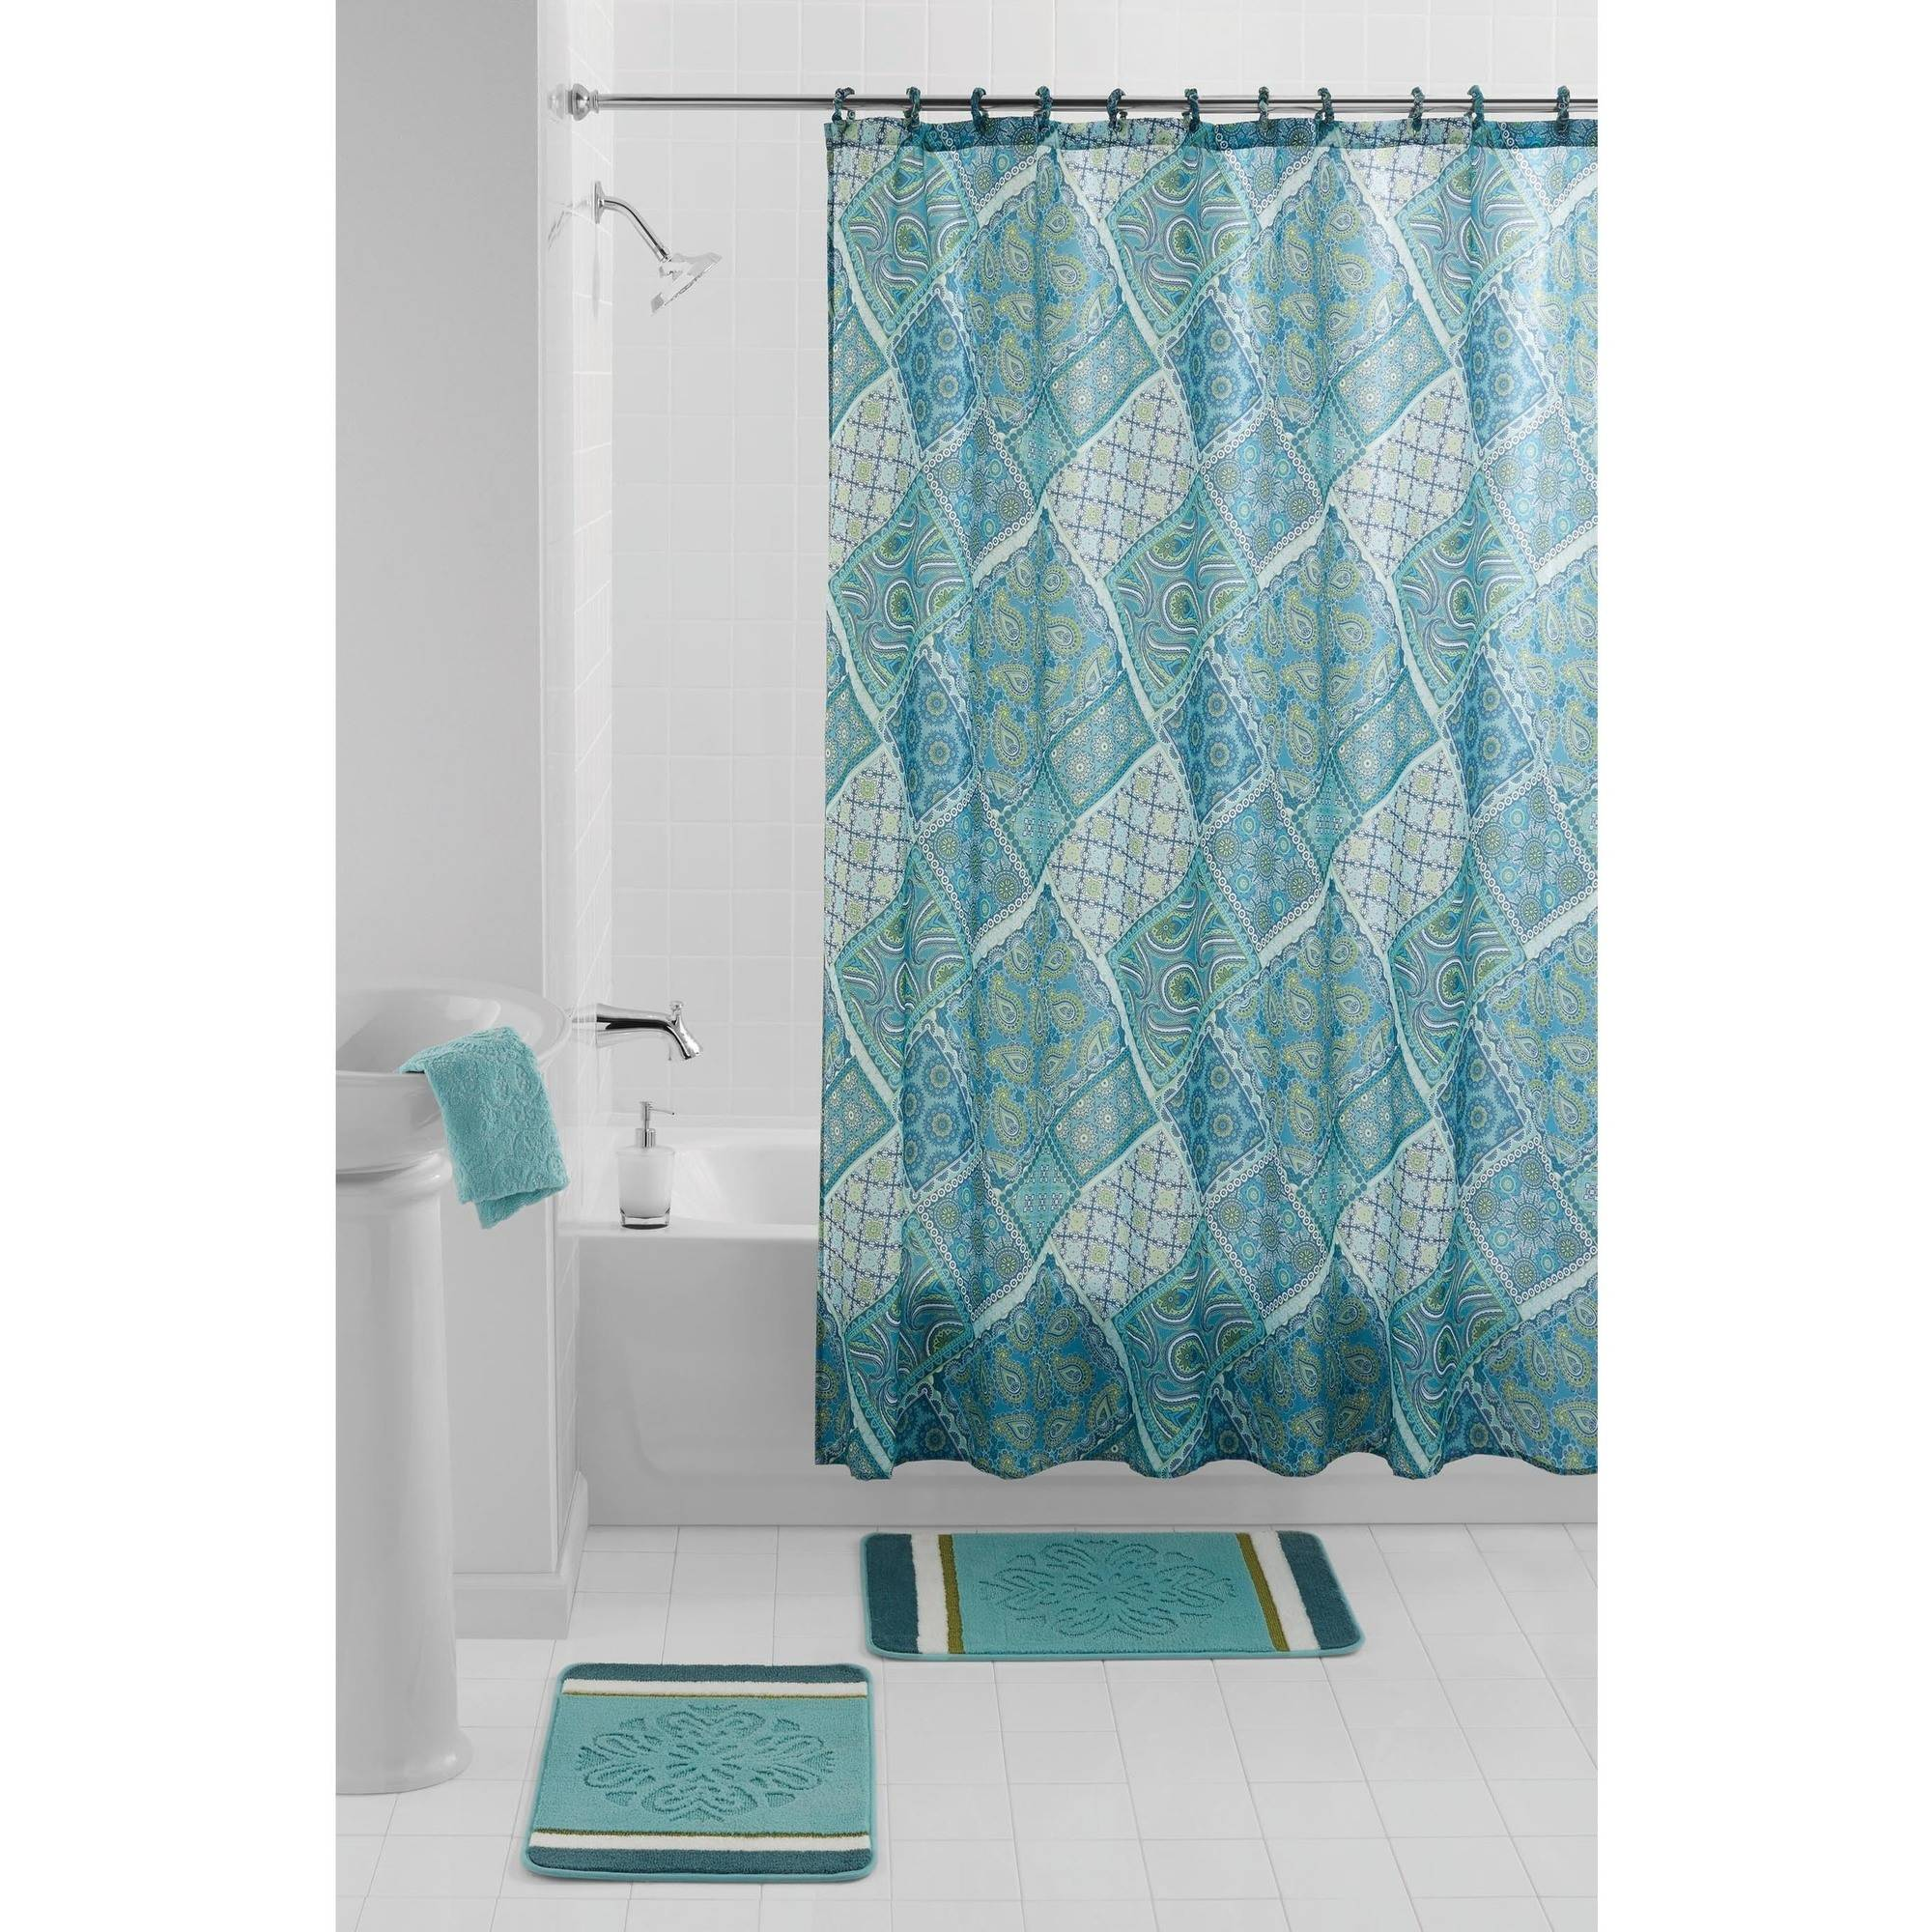 Mainstays Hadley Teal PEVA Shower Curtain 1 Each